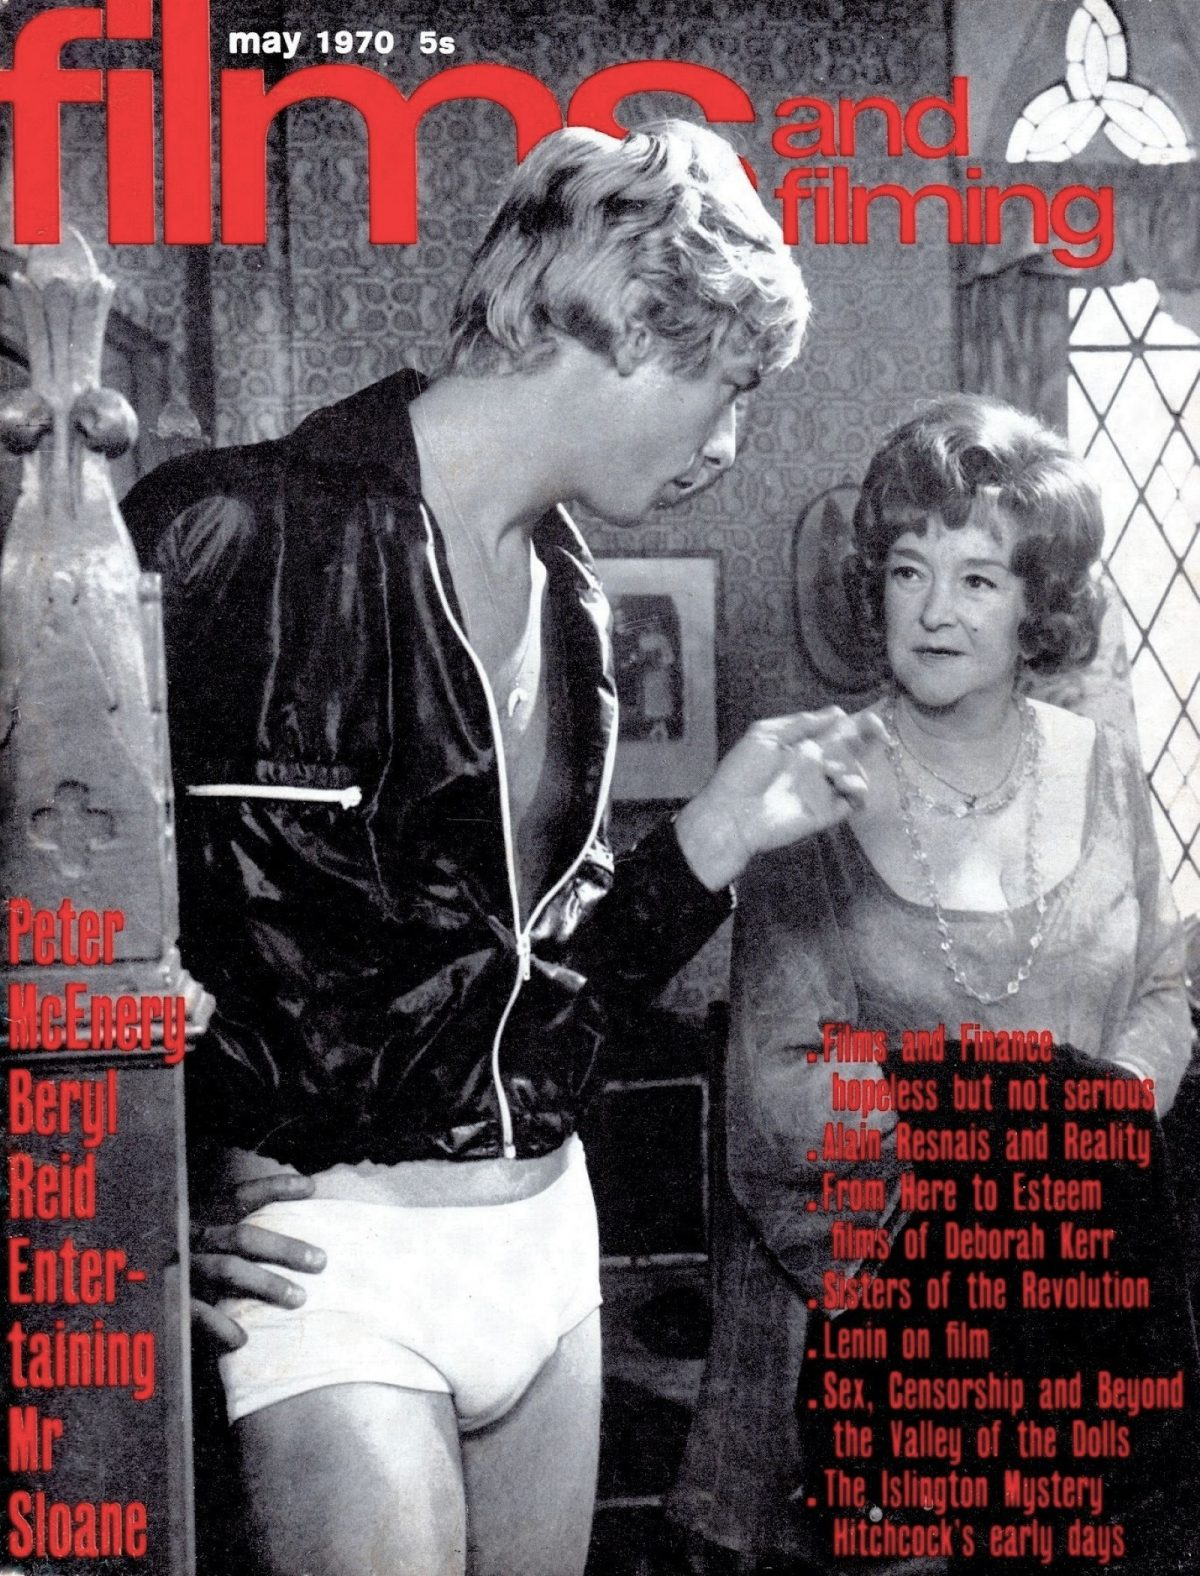 Films and Filming, magazine, film, Entertaining Mr Sloane, Joe Orton, Peter McEnry, Beryl Reid